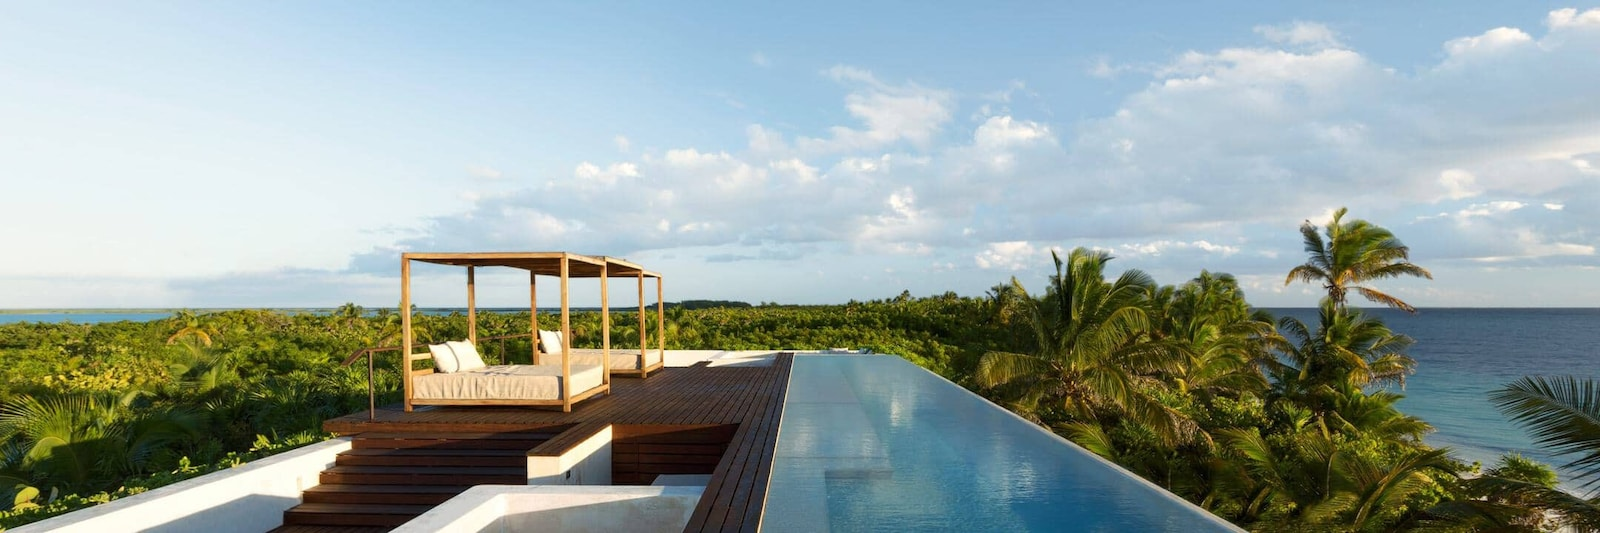 Luxury rentals in Riviera Maya